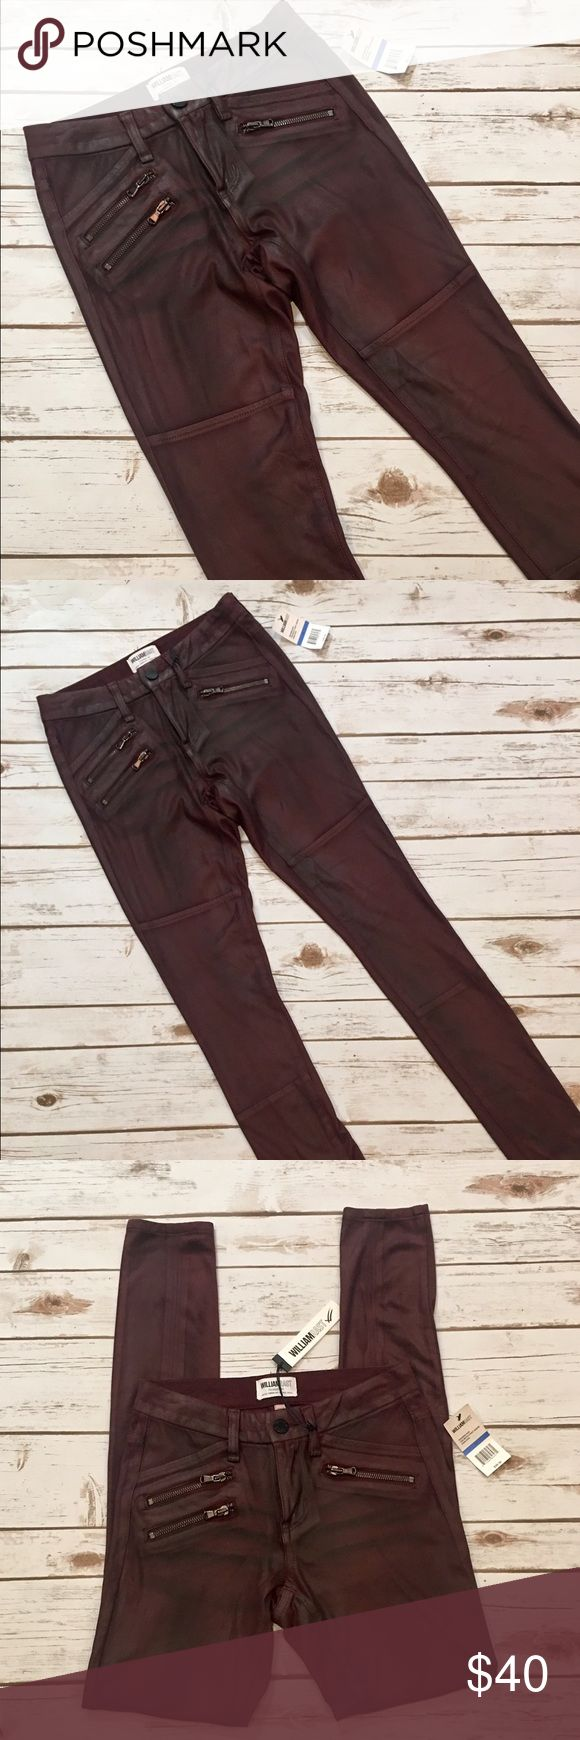 """👄William Rast Suede Moto Pant in Oxblood👄 SERIOUSLY AMAZIMG❣️❣️❣️William Rast is a brand founded by Justin Timberlake & Trace Ayala. These are silky soft, melt in your hands 88% polyester 12% elastane. Size 25. Waist measures 13"""" laying flat across. Inseam 31"""". Easy stretch, Three kick a$$ front zipper pockets of which one is functional. Two back pockets for your matching lipstick 💄 Moto style seams. Brand new with tags. Retail price $100.00. Grab them here for less🤑 Straight rockstar…"""